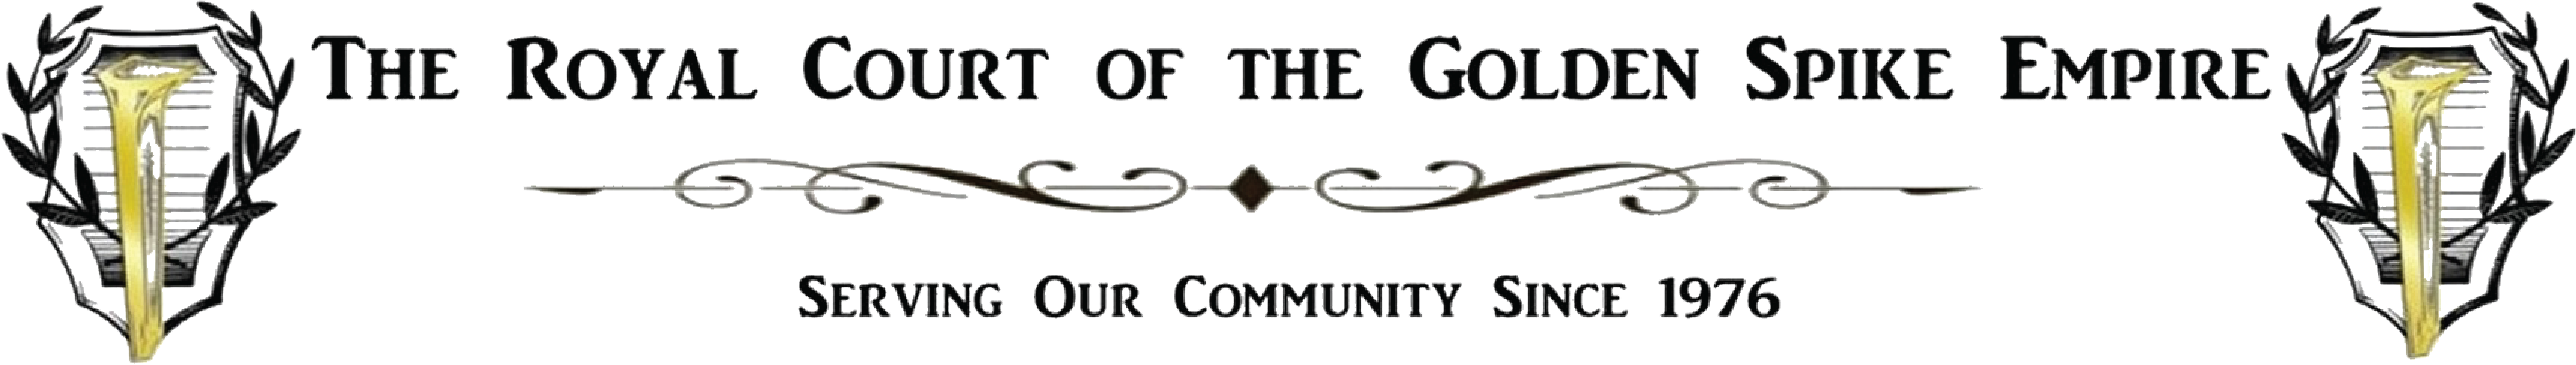 Royal Court of the Golden Spike Empire Logo.